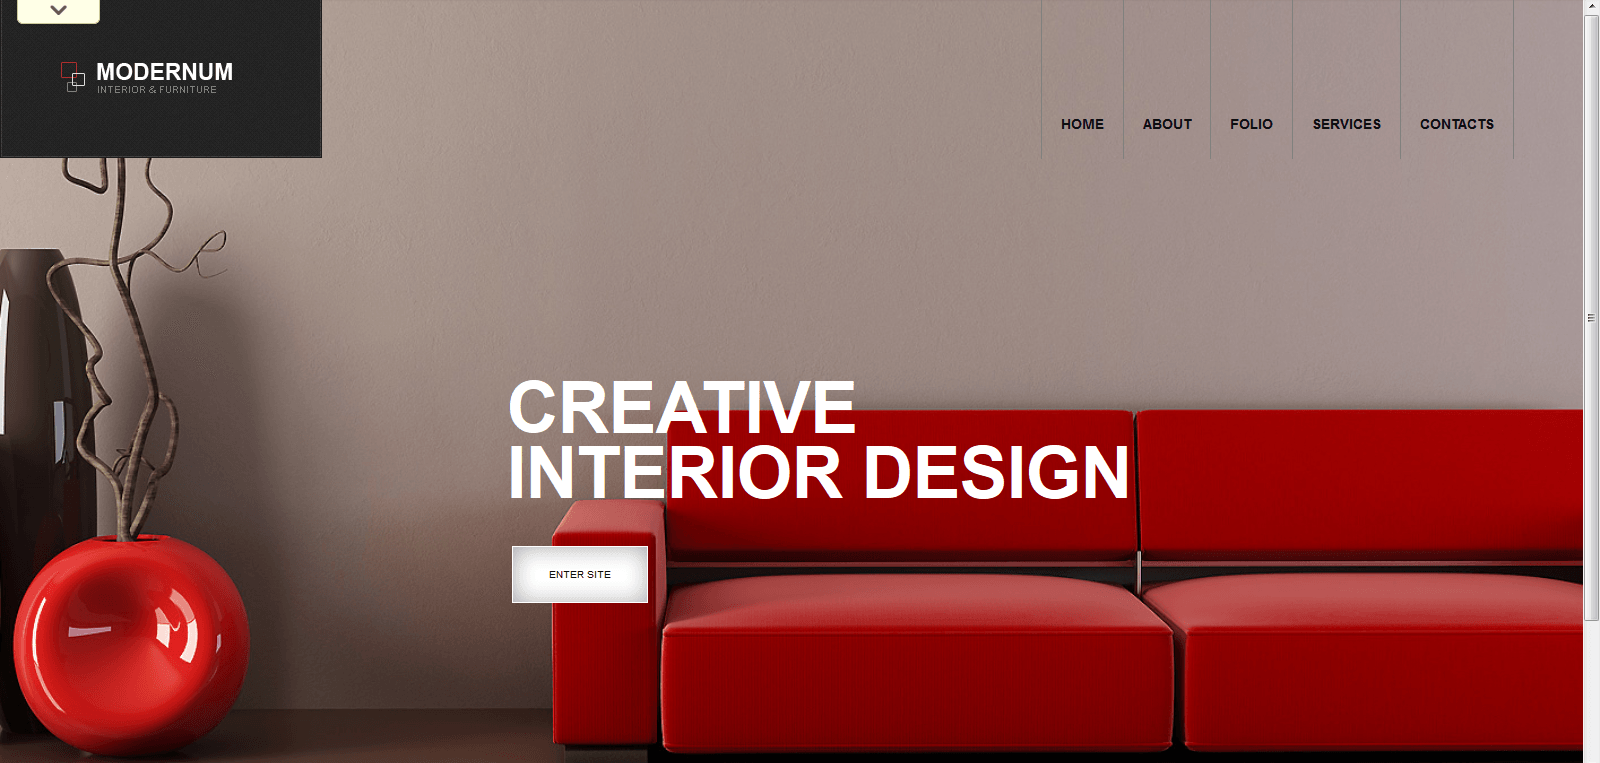 Some Outstanding WordPress Themes For Interior Design Websites